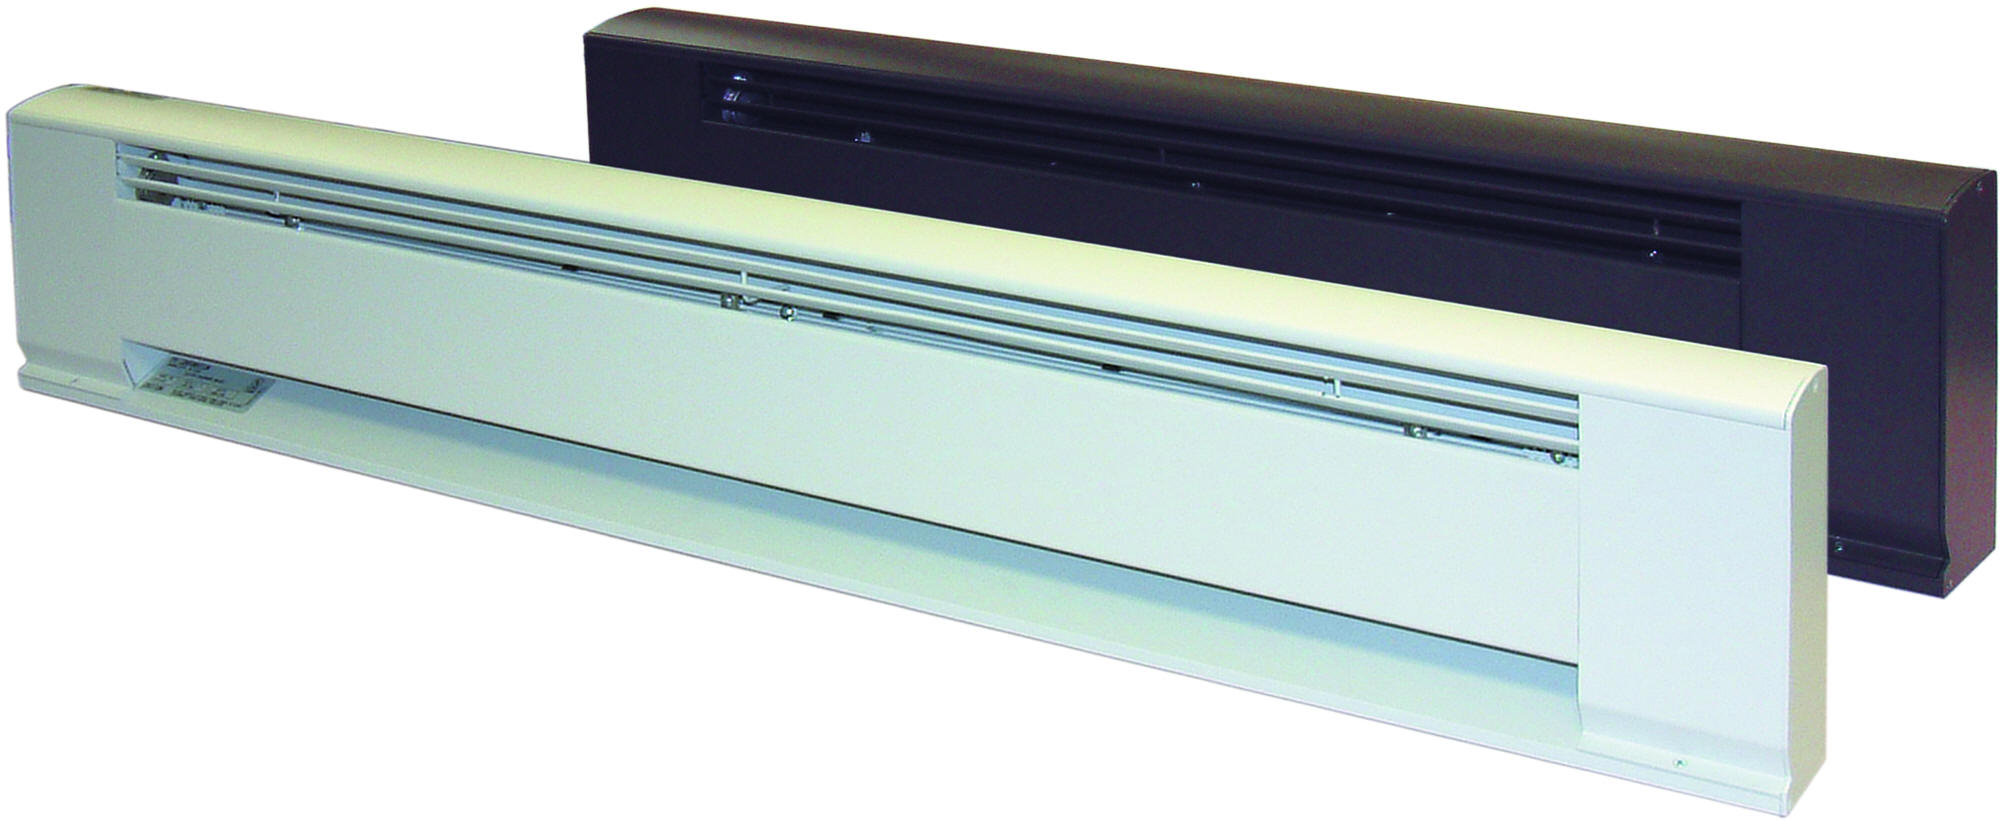 Fluid Filled Electric Heaters